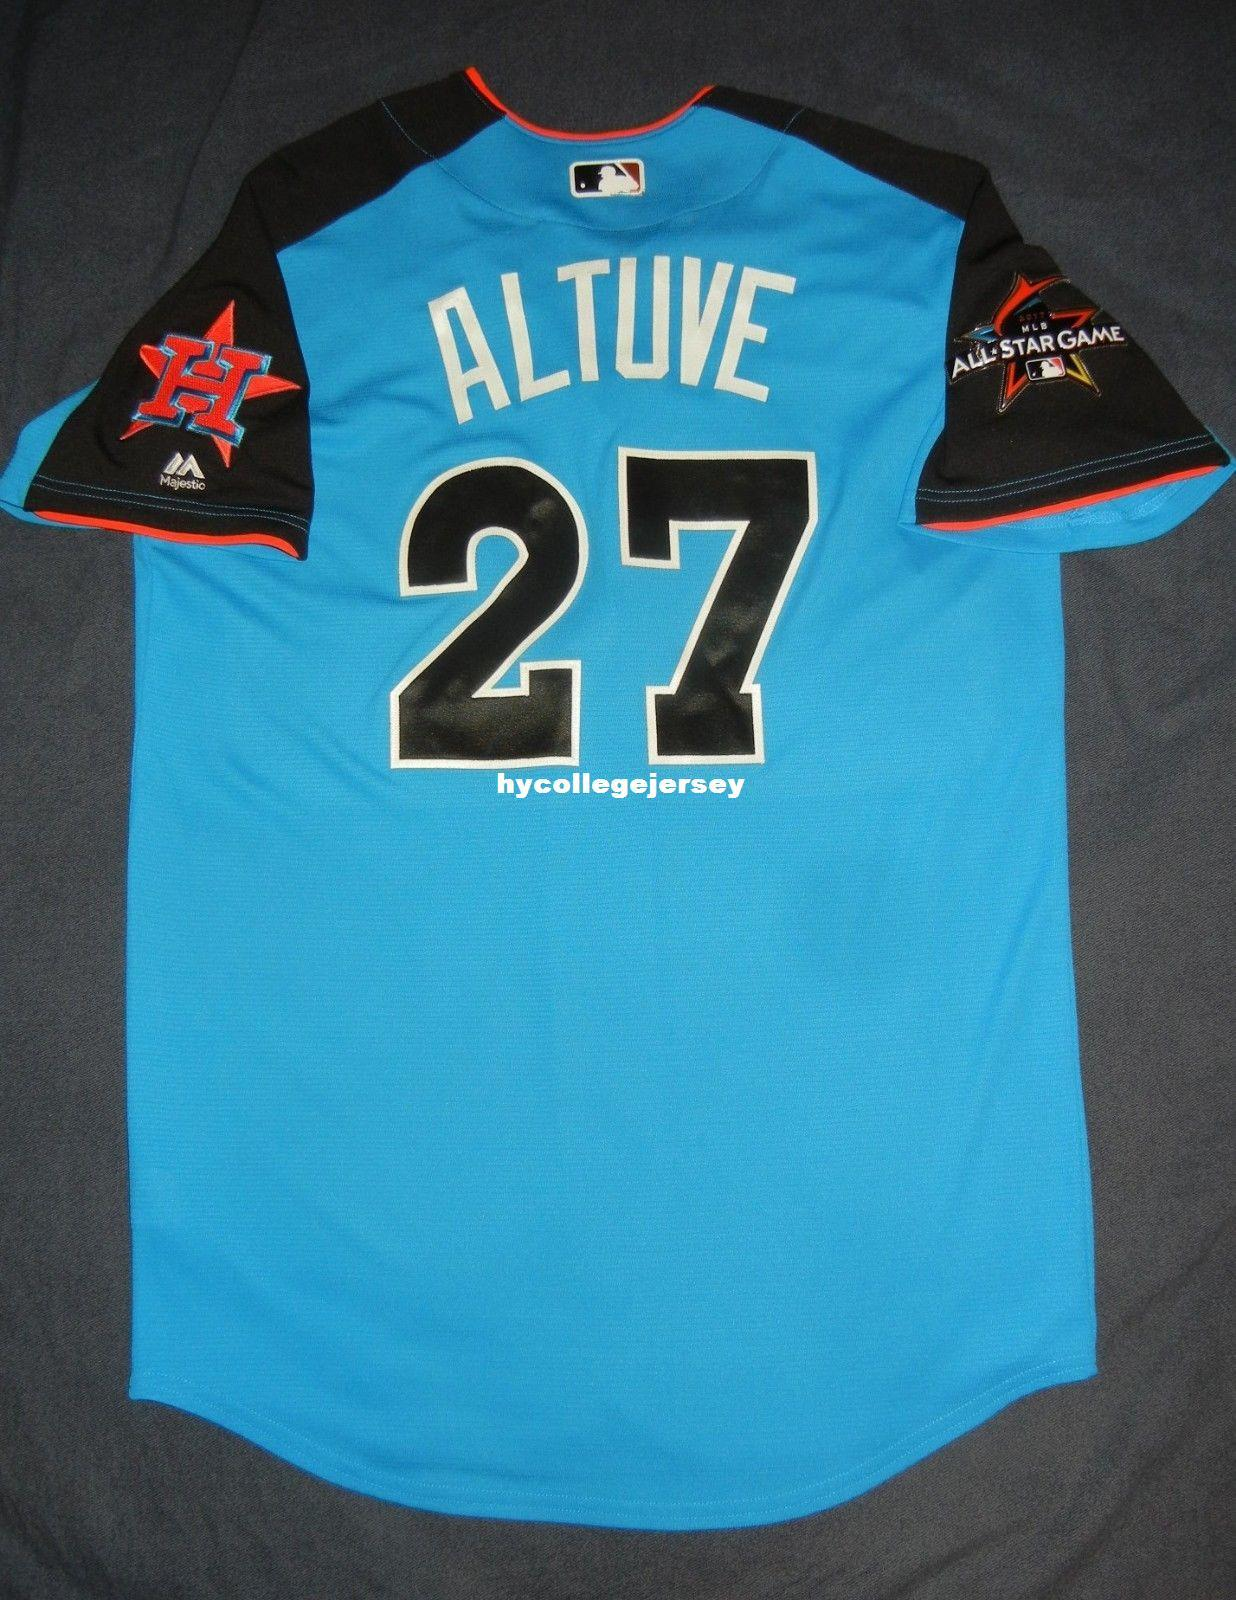 size 40 c3fec 4b1e8 2018 Cheap Retro #27 JOSE ALTUVE 2017 Top American League All Star Houston  Jersey 44 L Mens Stitched Shirt Jerseys From Hycollegejersey, &Price; | ...